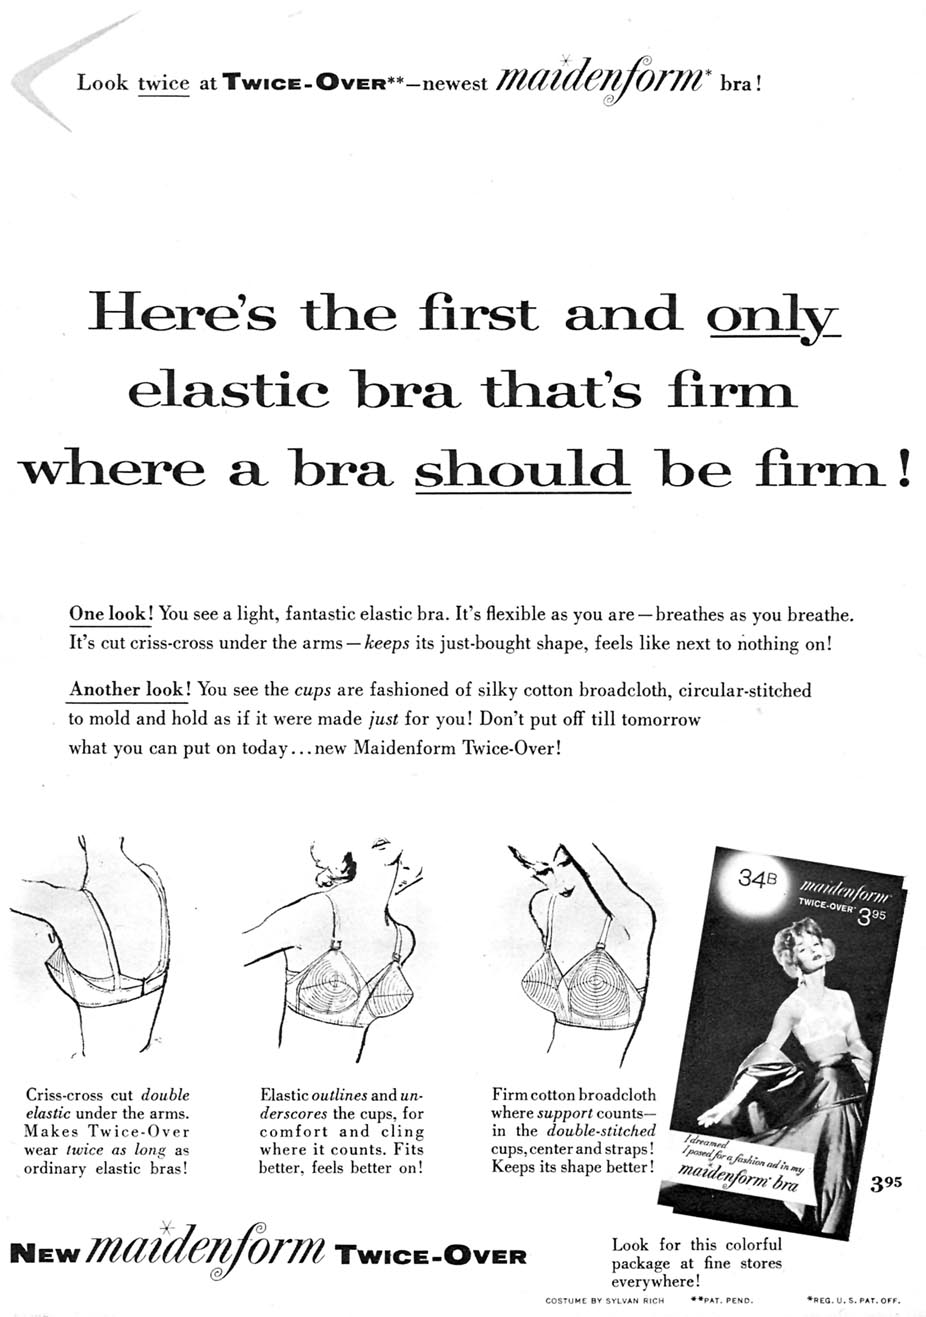 MAIDENFORM BRA FAMILY CIRCLE 11/01/1957 p. 11